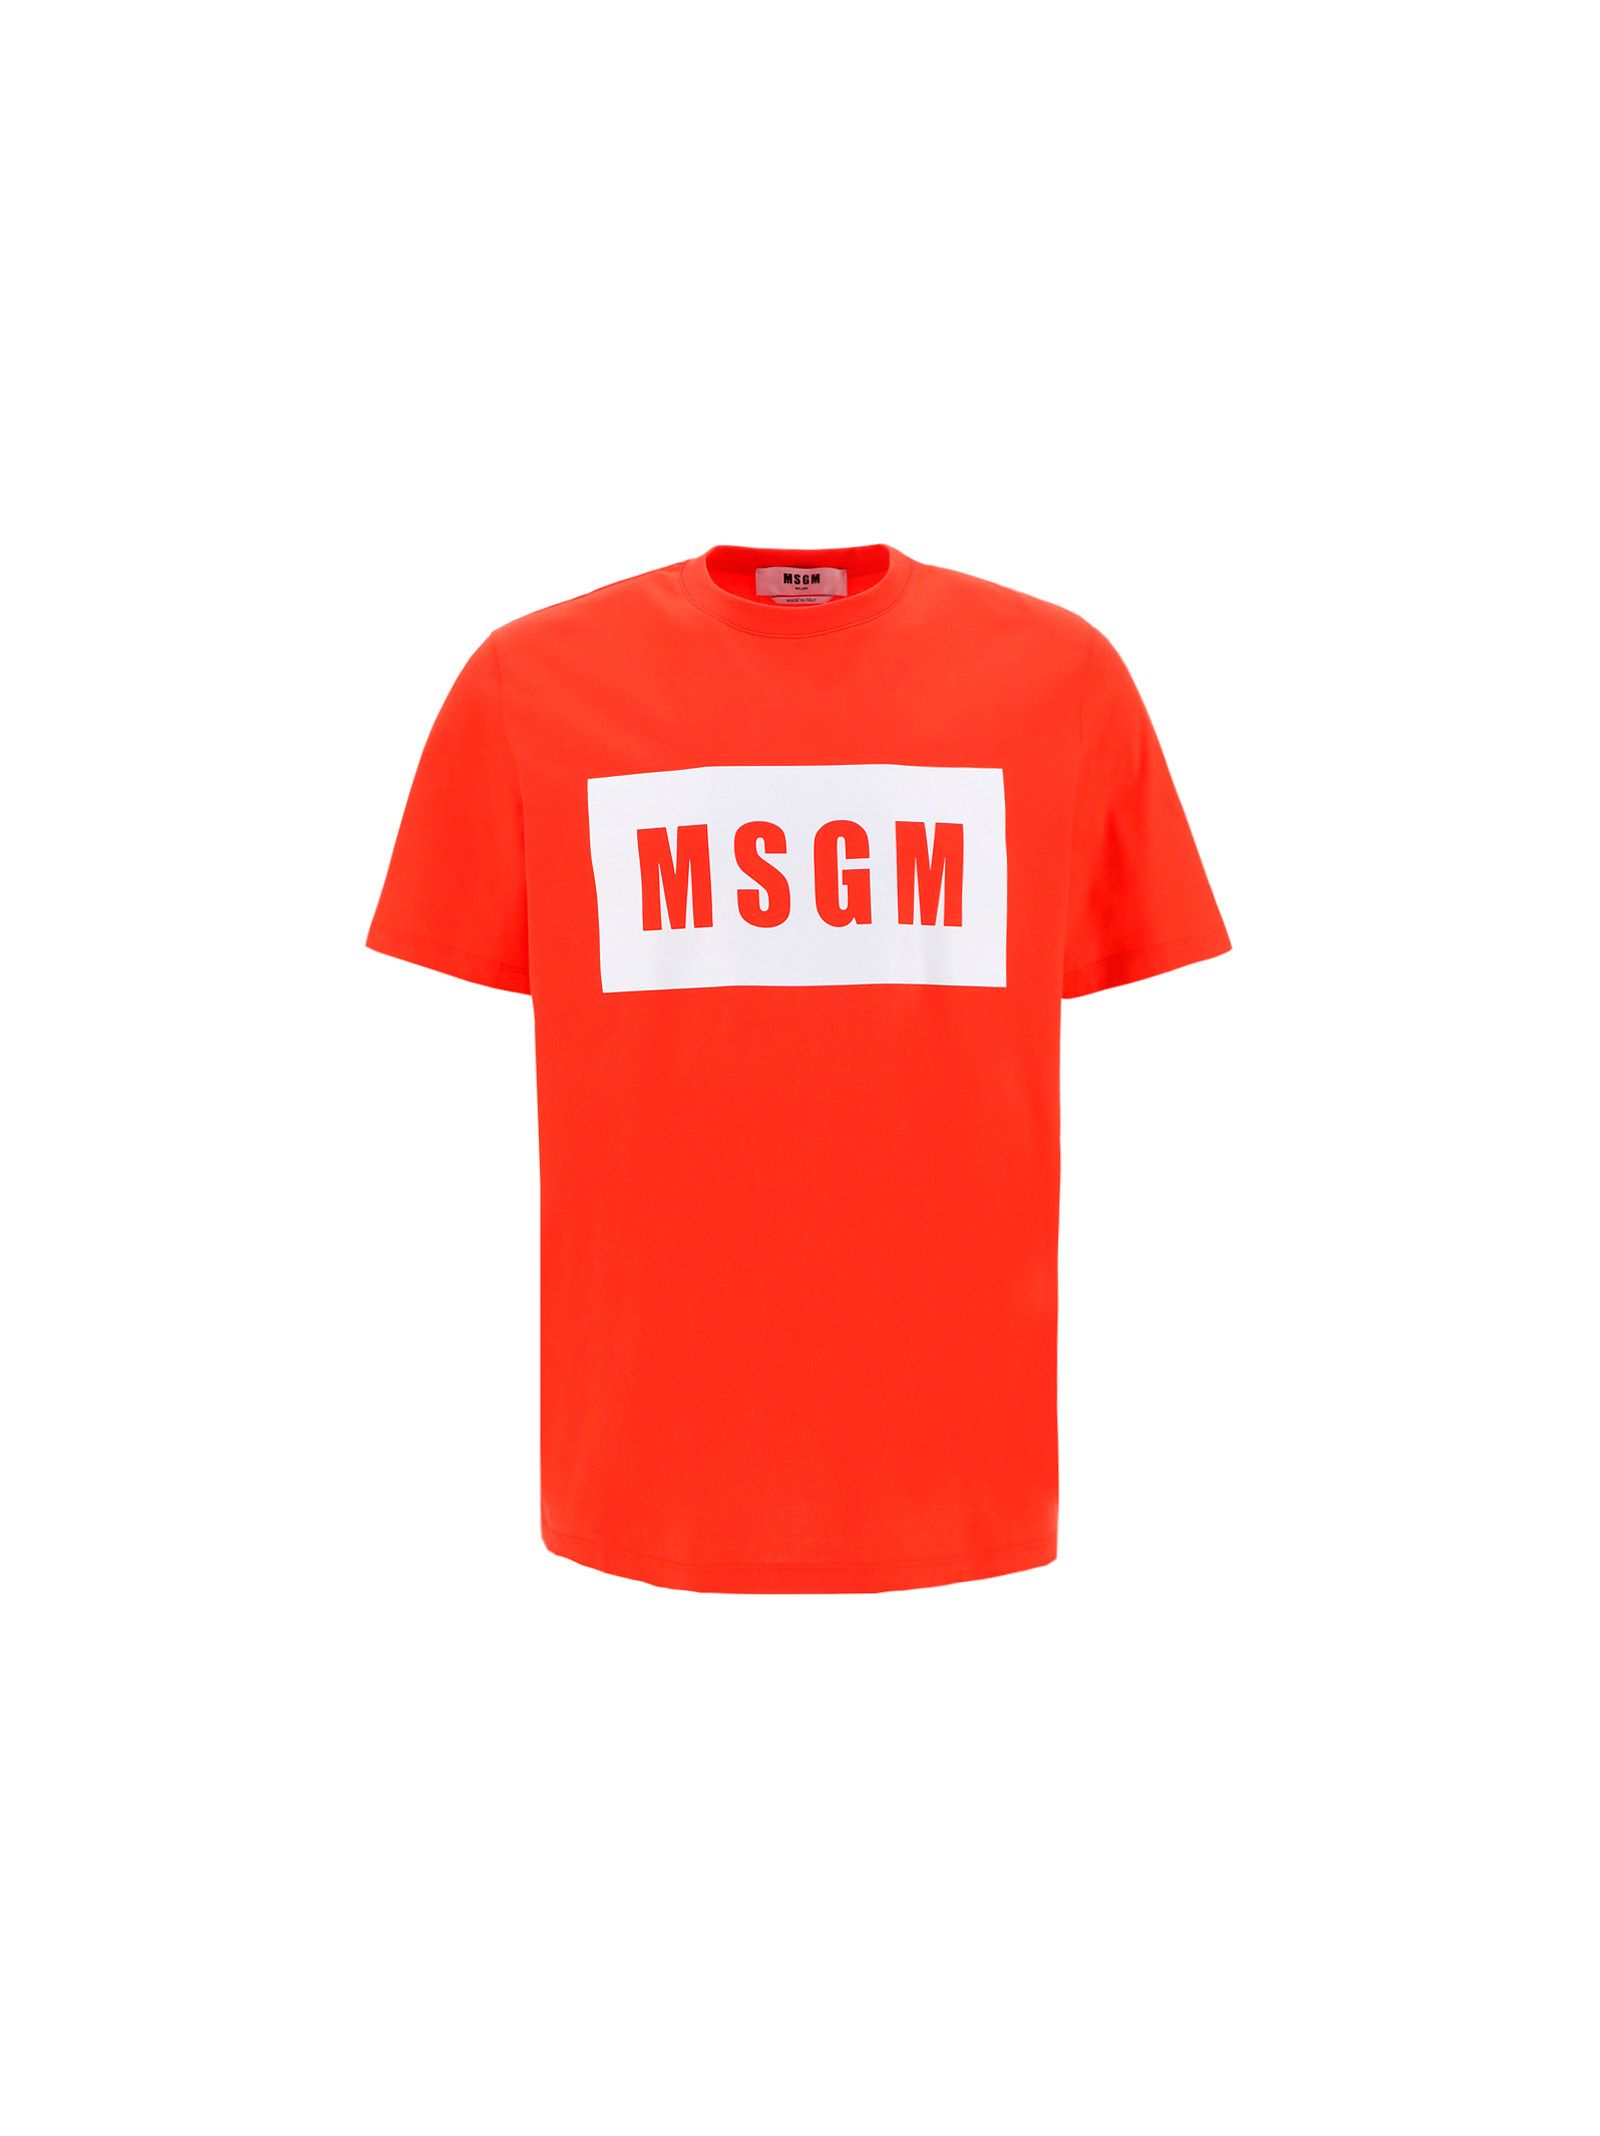 Msgm MEN'S 3040MM6721709819 RED OTHER MATERIALS T-SHIRT